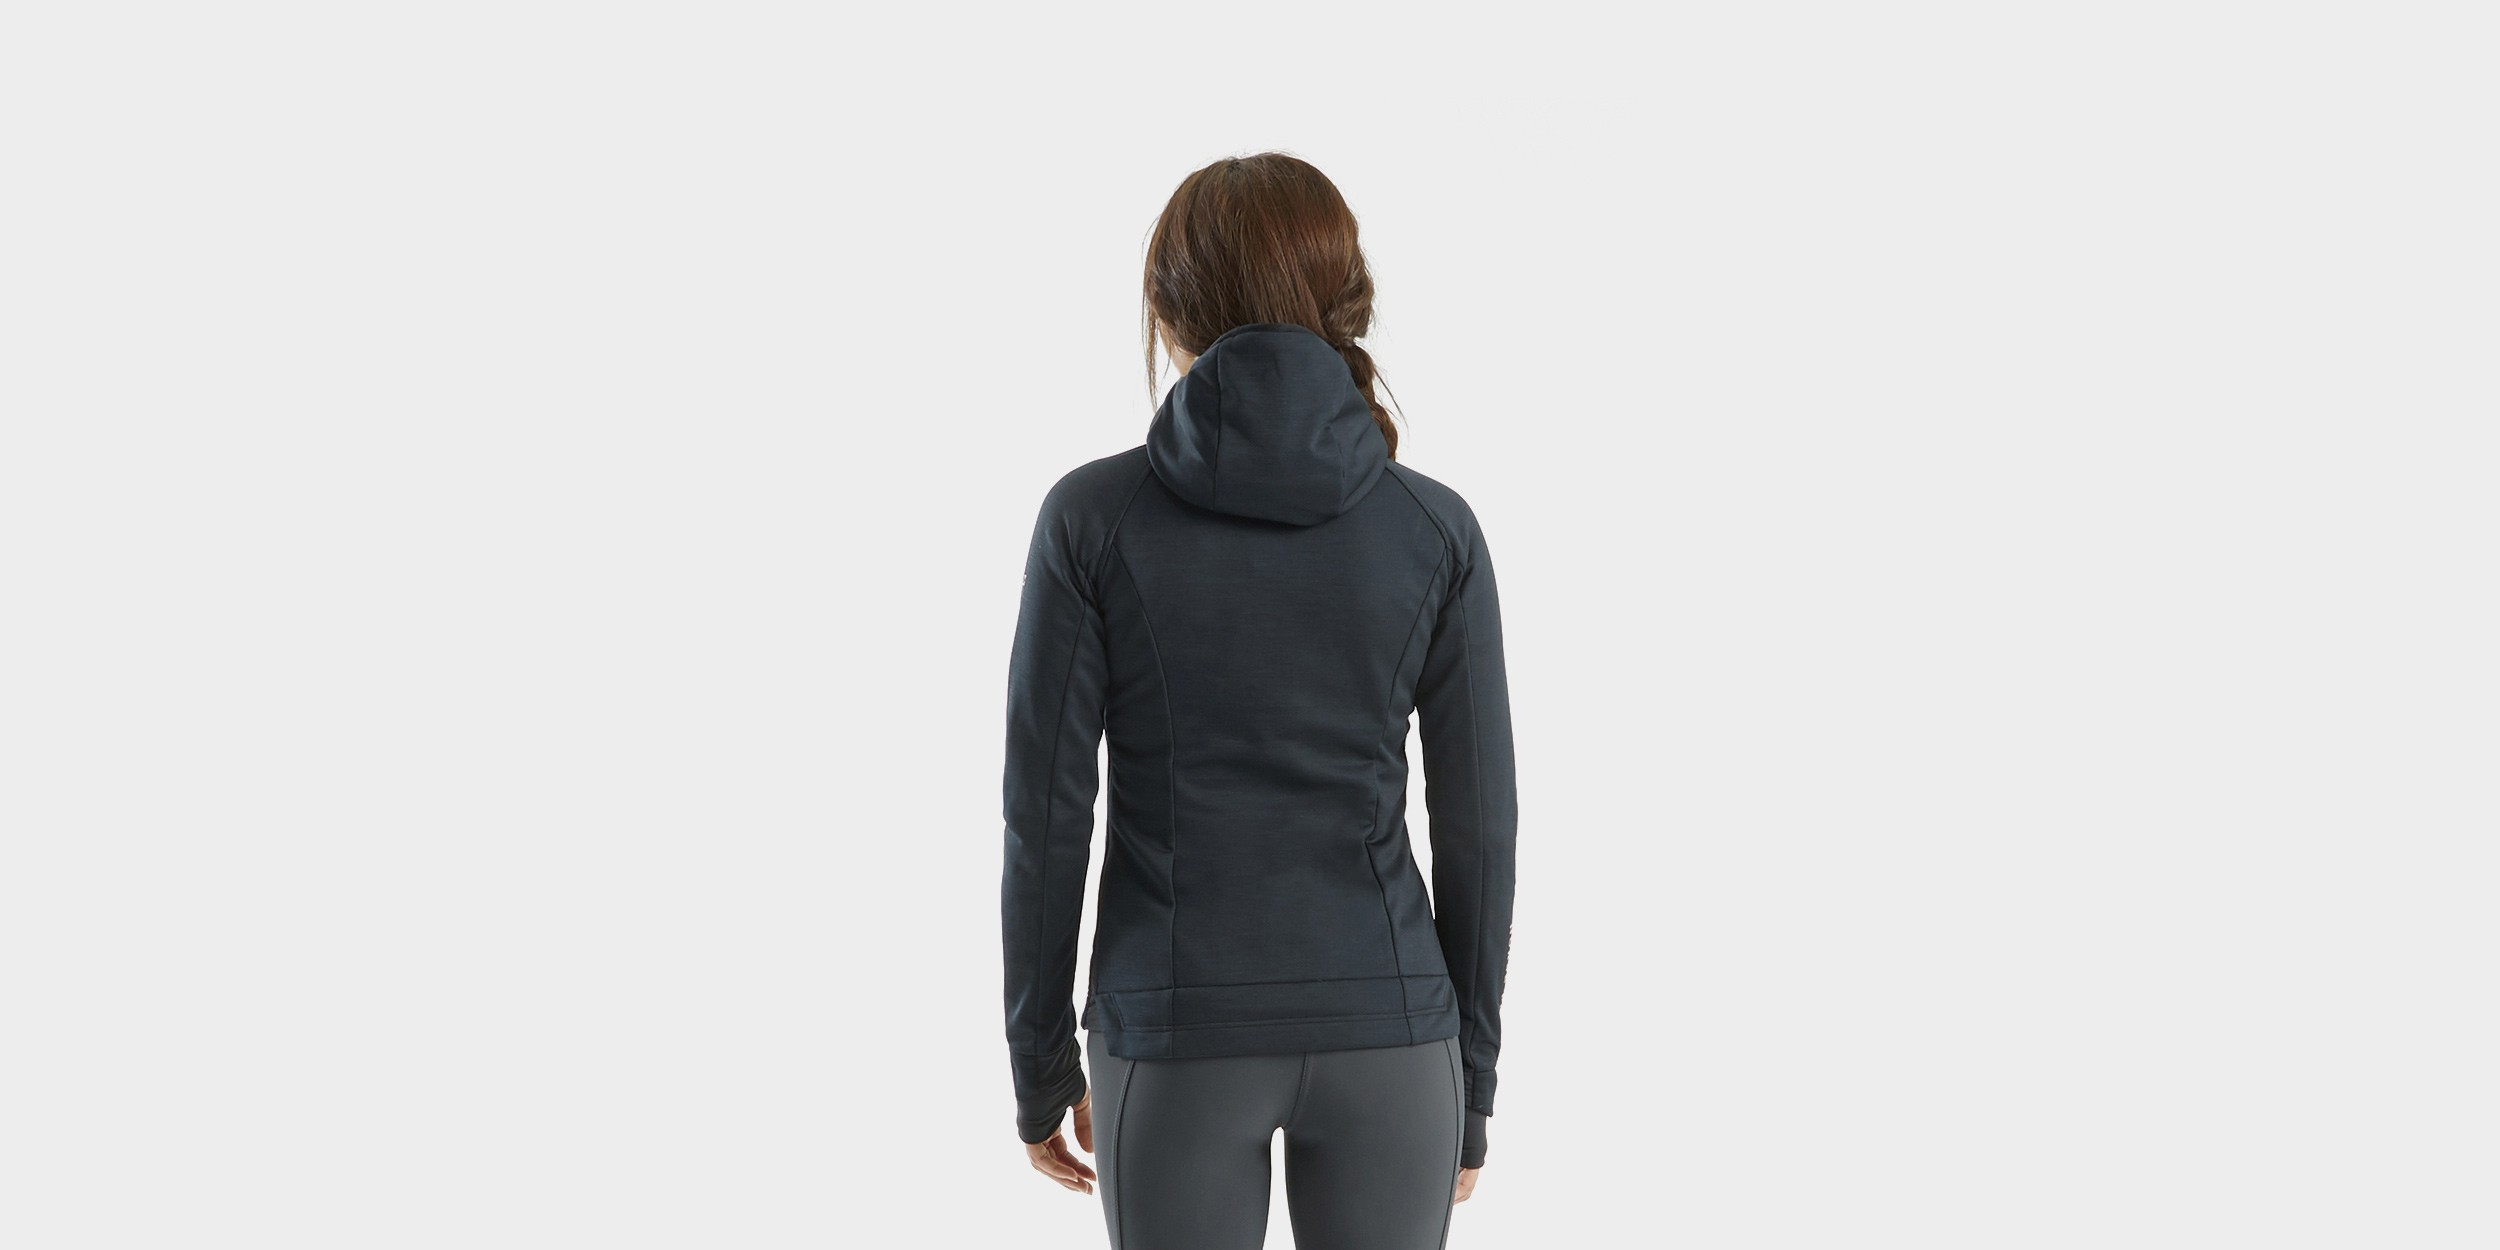 riding TEMPEST sweatshirt for woman